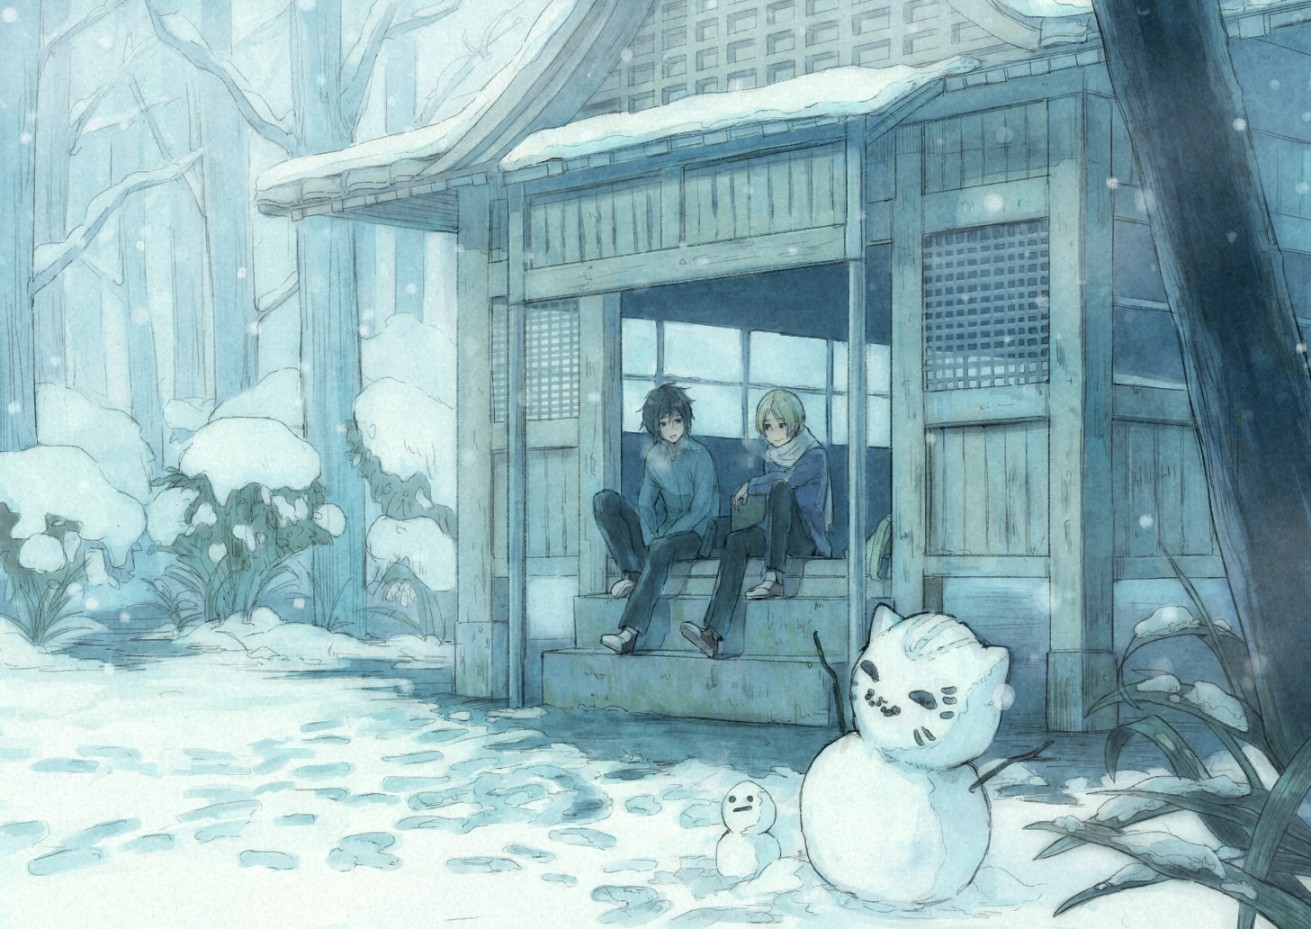 anime snow scenery keywords and pictures